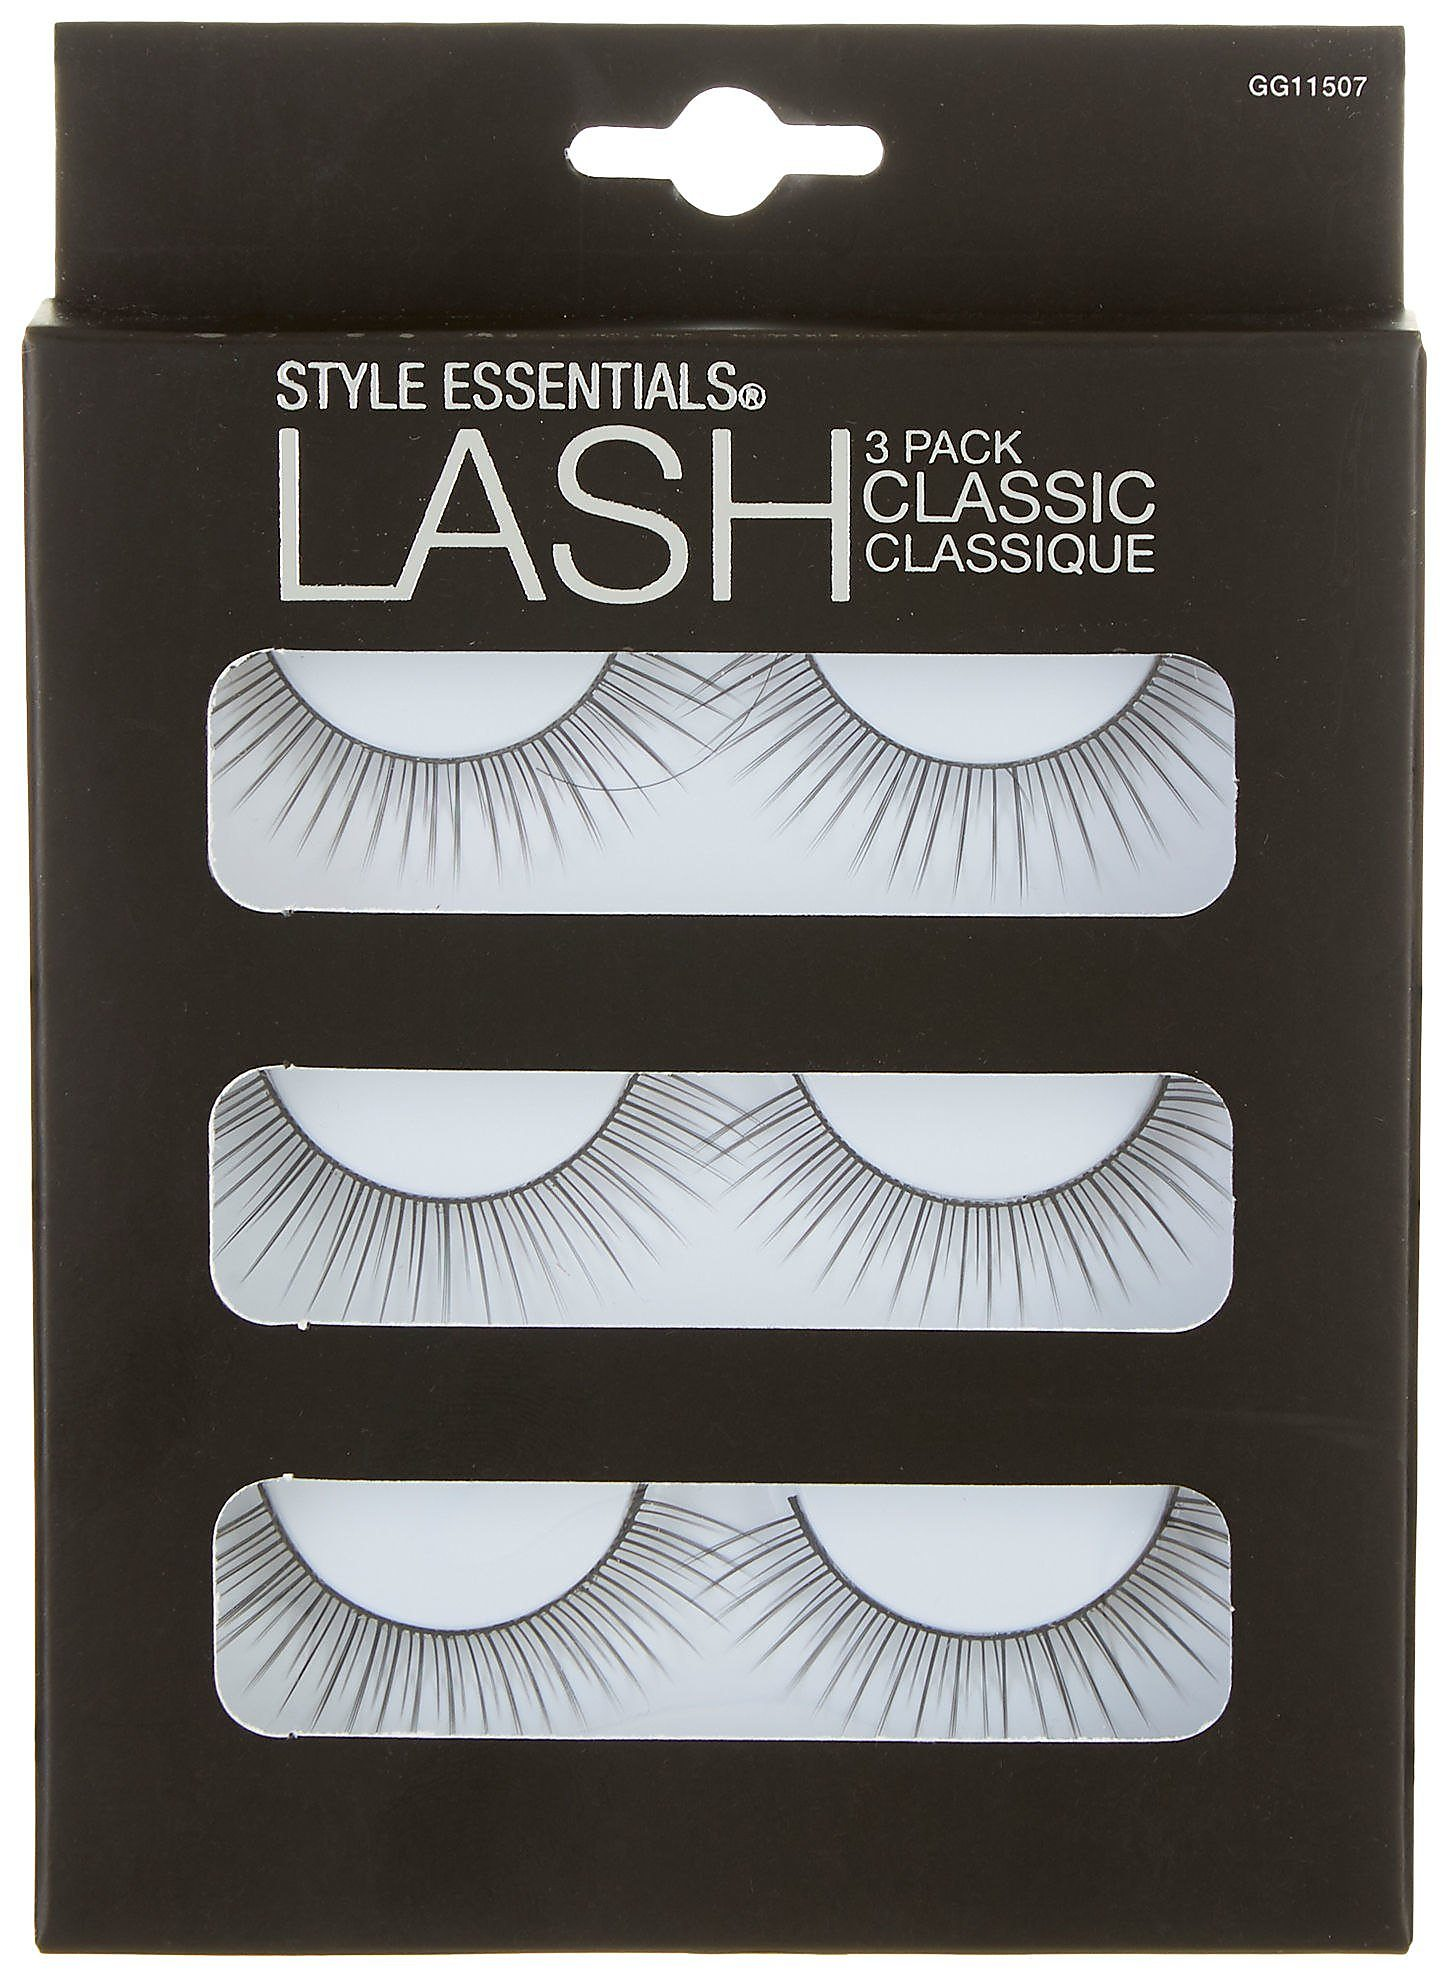 65f3965f4d0 Details about Style Essentials 3-pk. Classic False Lashes One Size Black